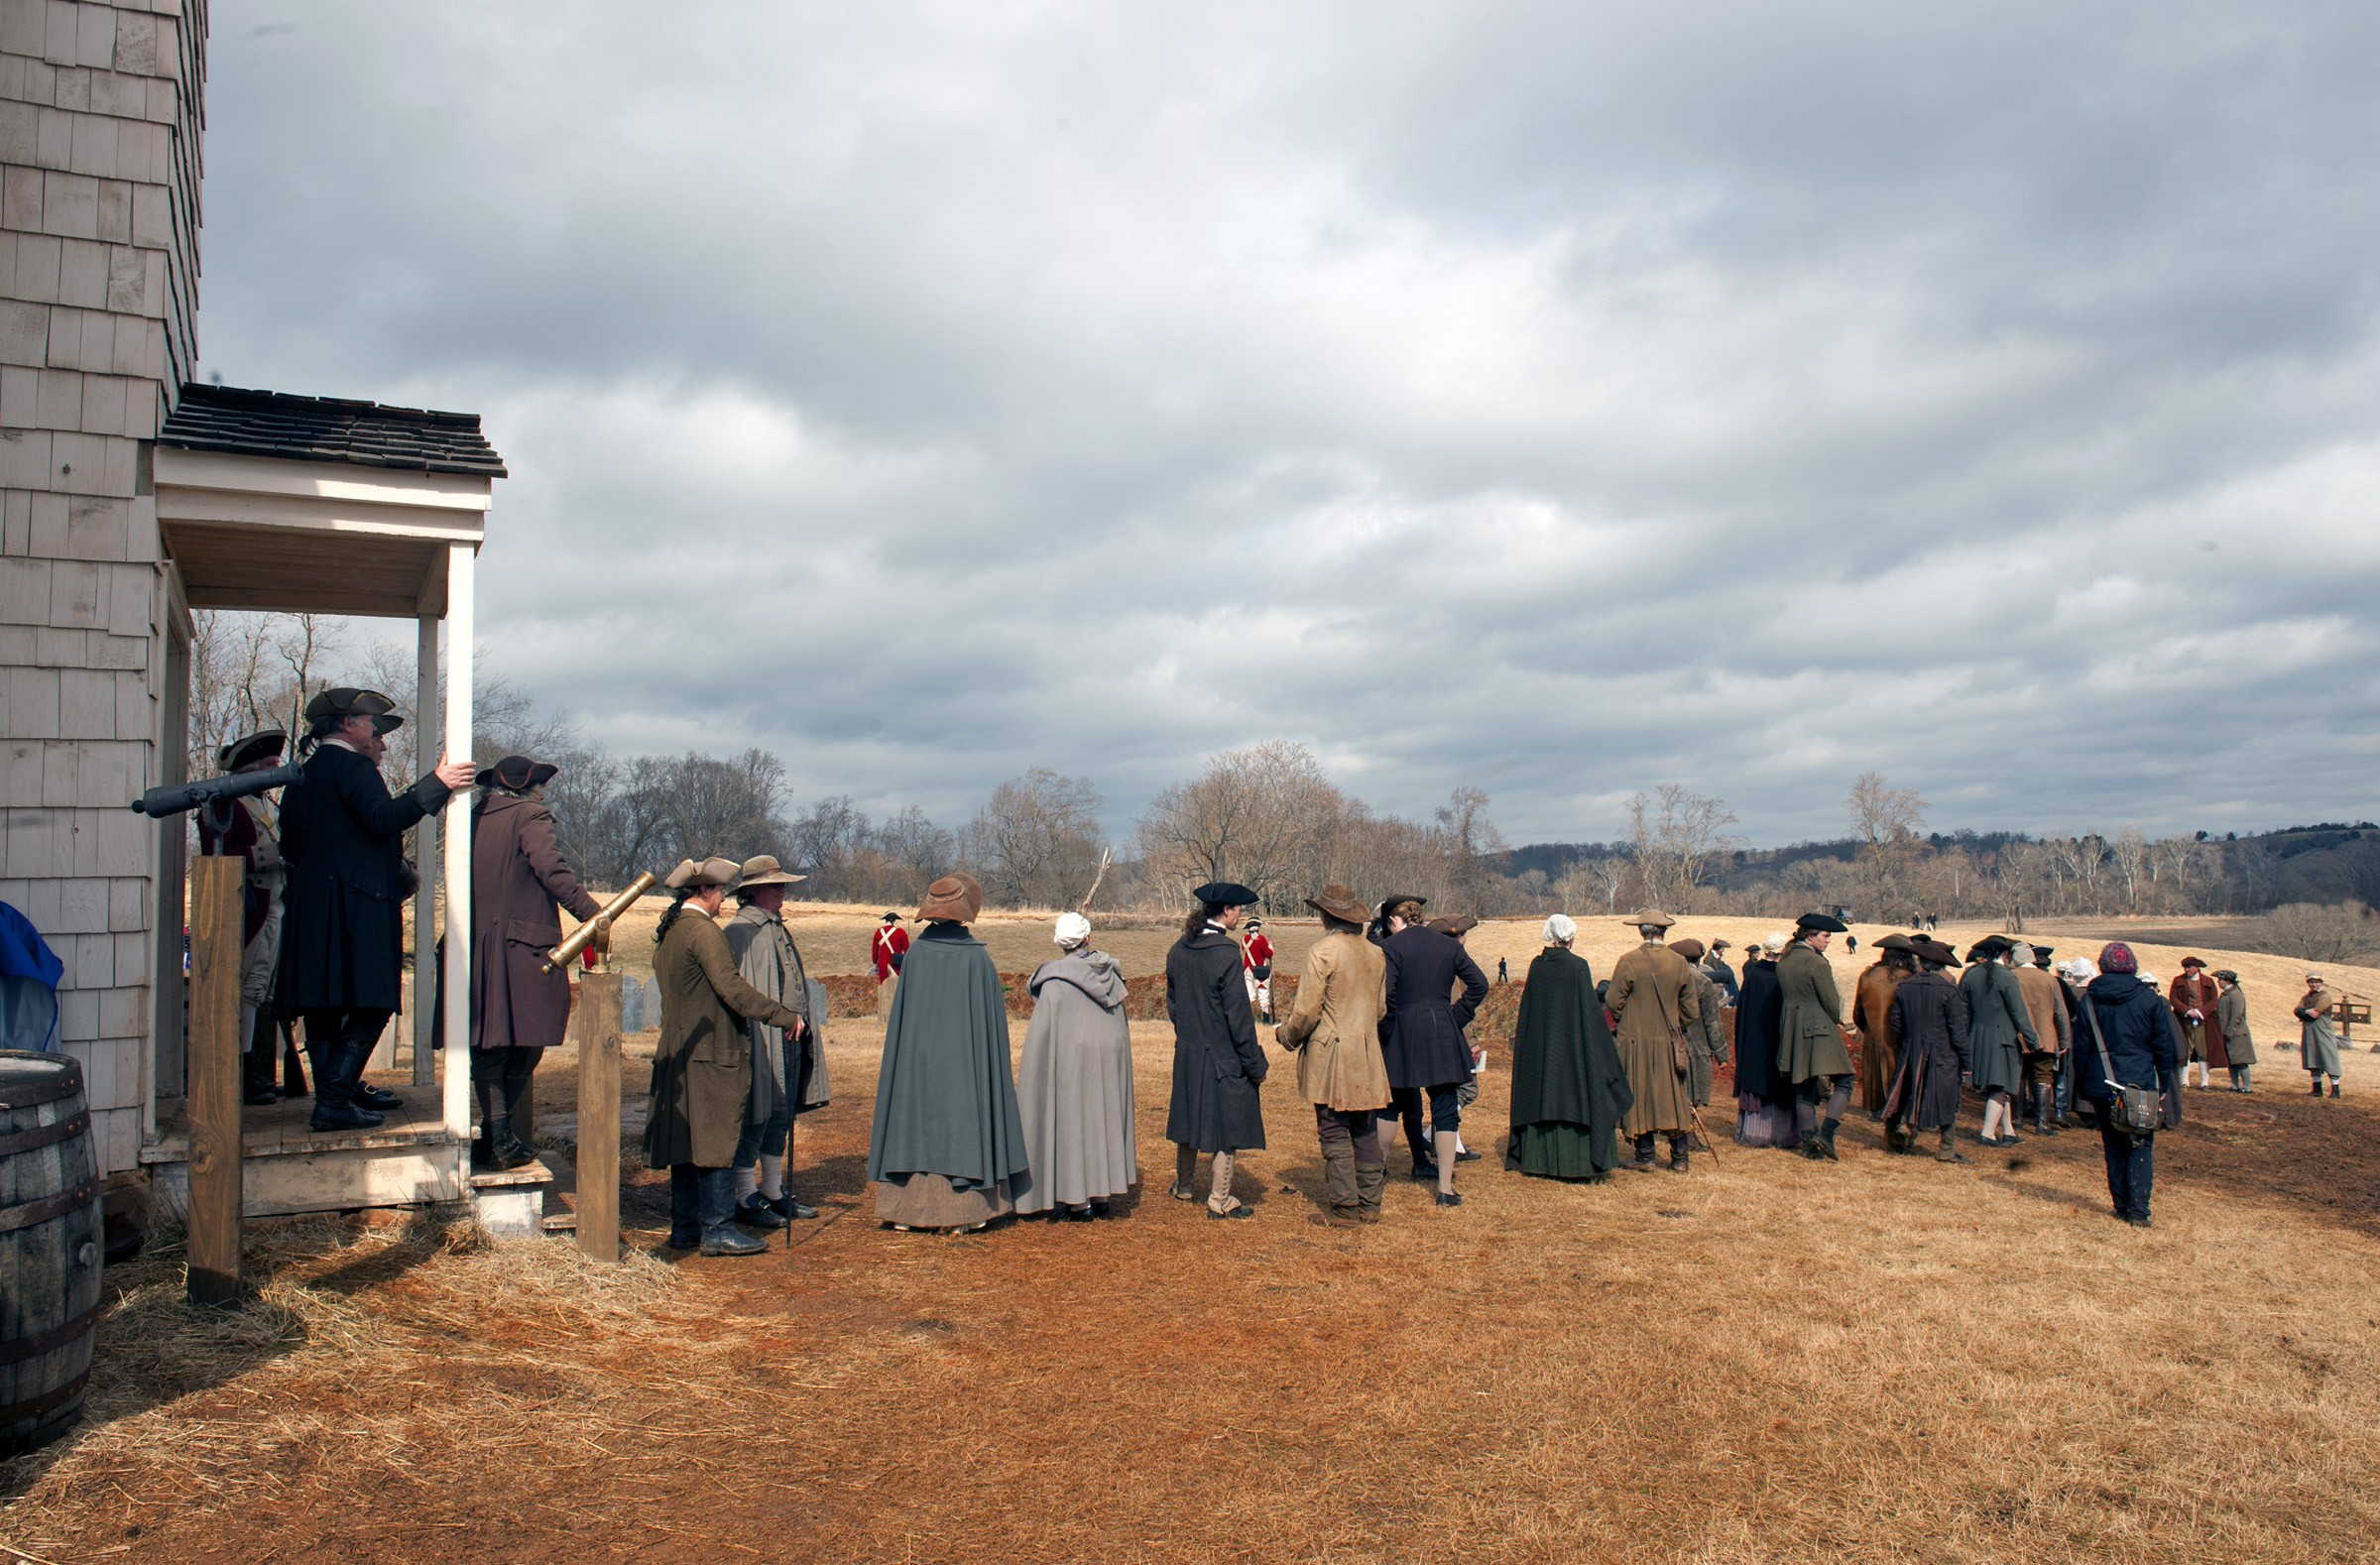 """A few hours after a downpour on a cold day in late February, a line of background actors prepares for a sweeping shot on the set of """"Turn,"""" west of Richmond. Just over the hill to the right is the set for Setauket, which appears onscreen as a small, coastal town. - SCOTT ELMQUIST"""